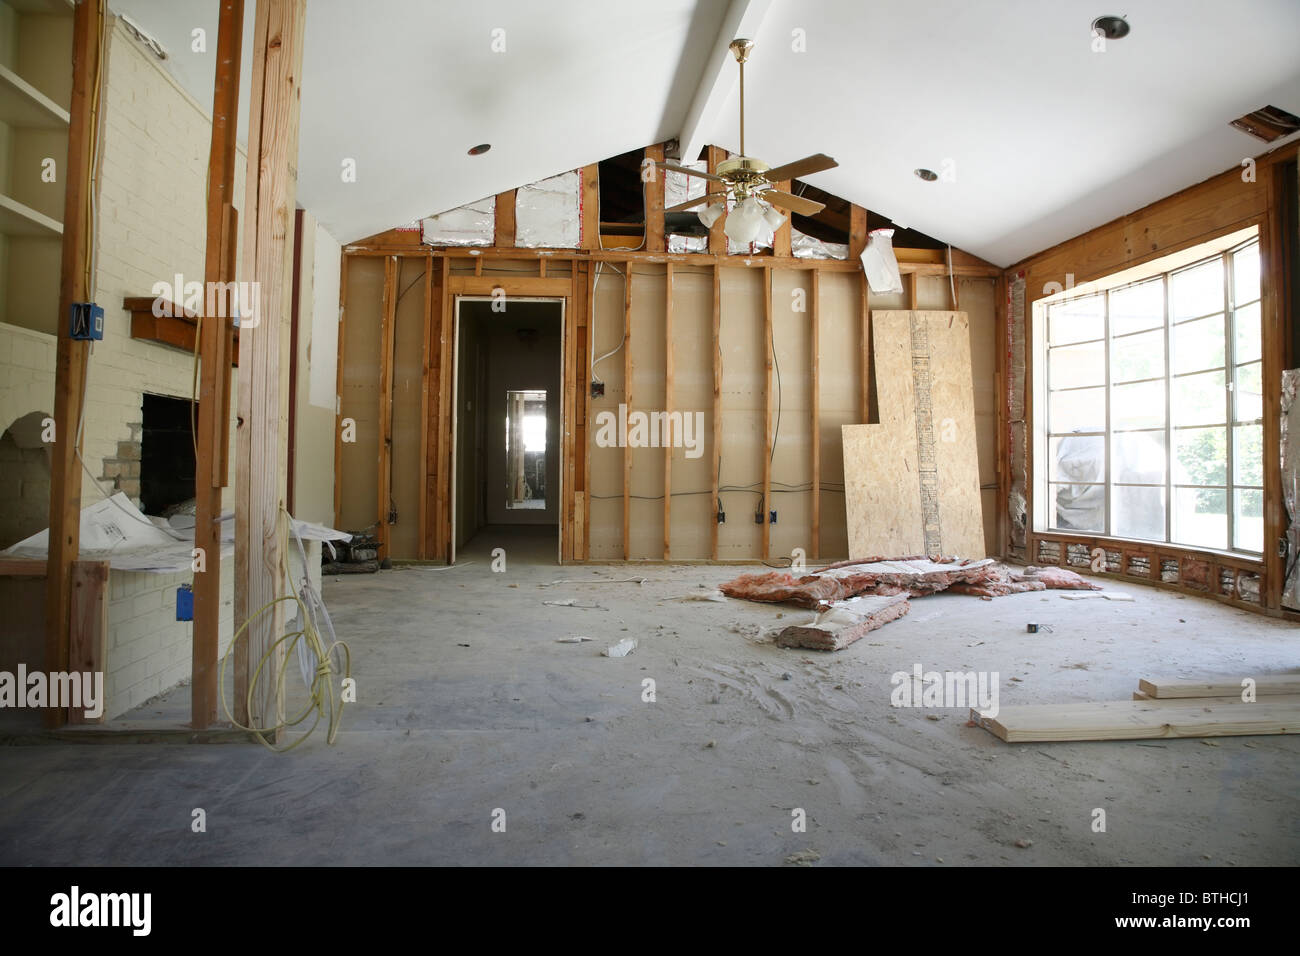 Ceiling Fan Abandoned Building High Resolution Stock Photography And Images Alamy